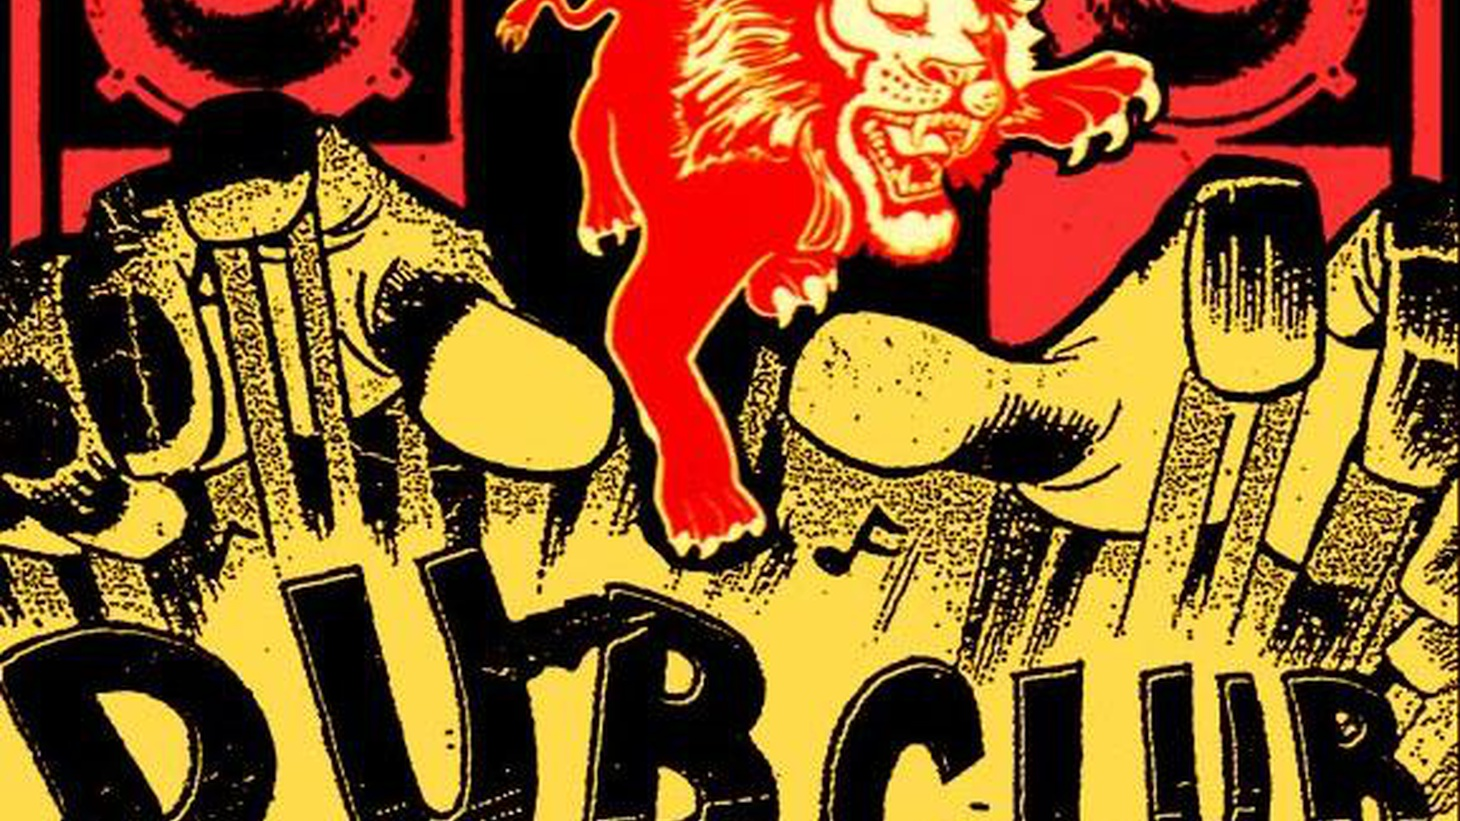 DJ Tom Chasteen's Dub Club is a hugely popular weekly gathering of reggae artists here in LA.